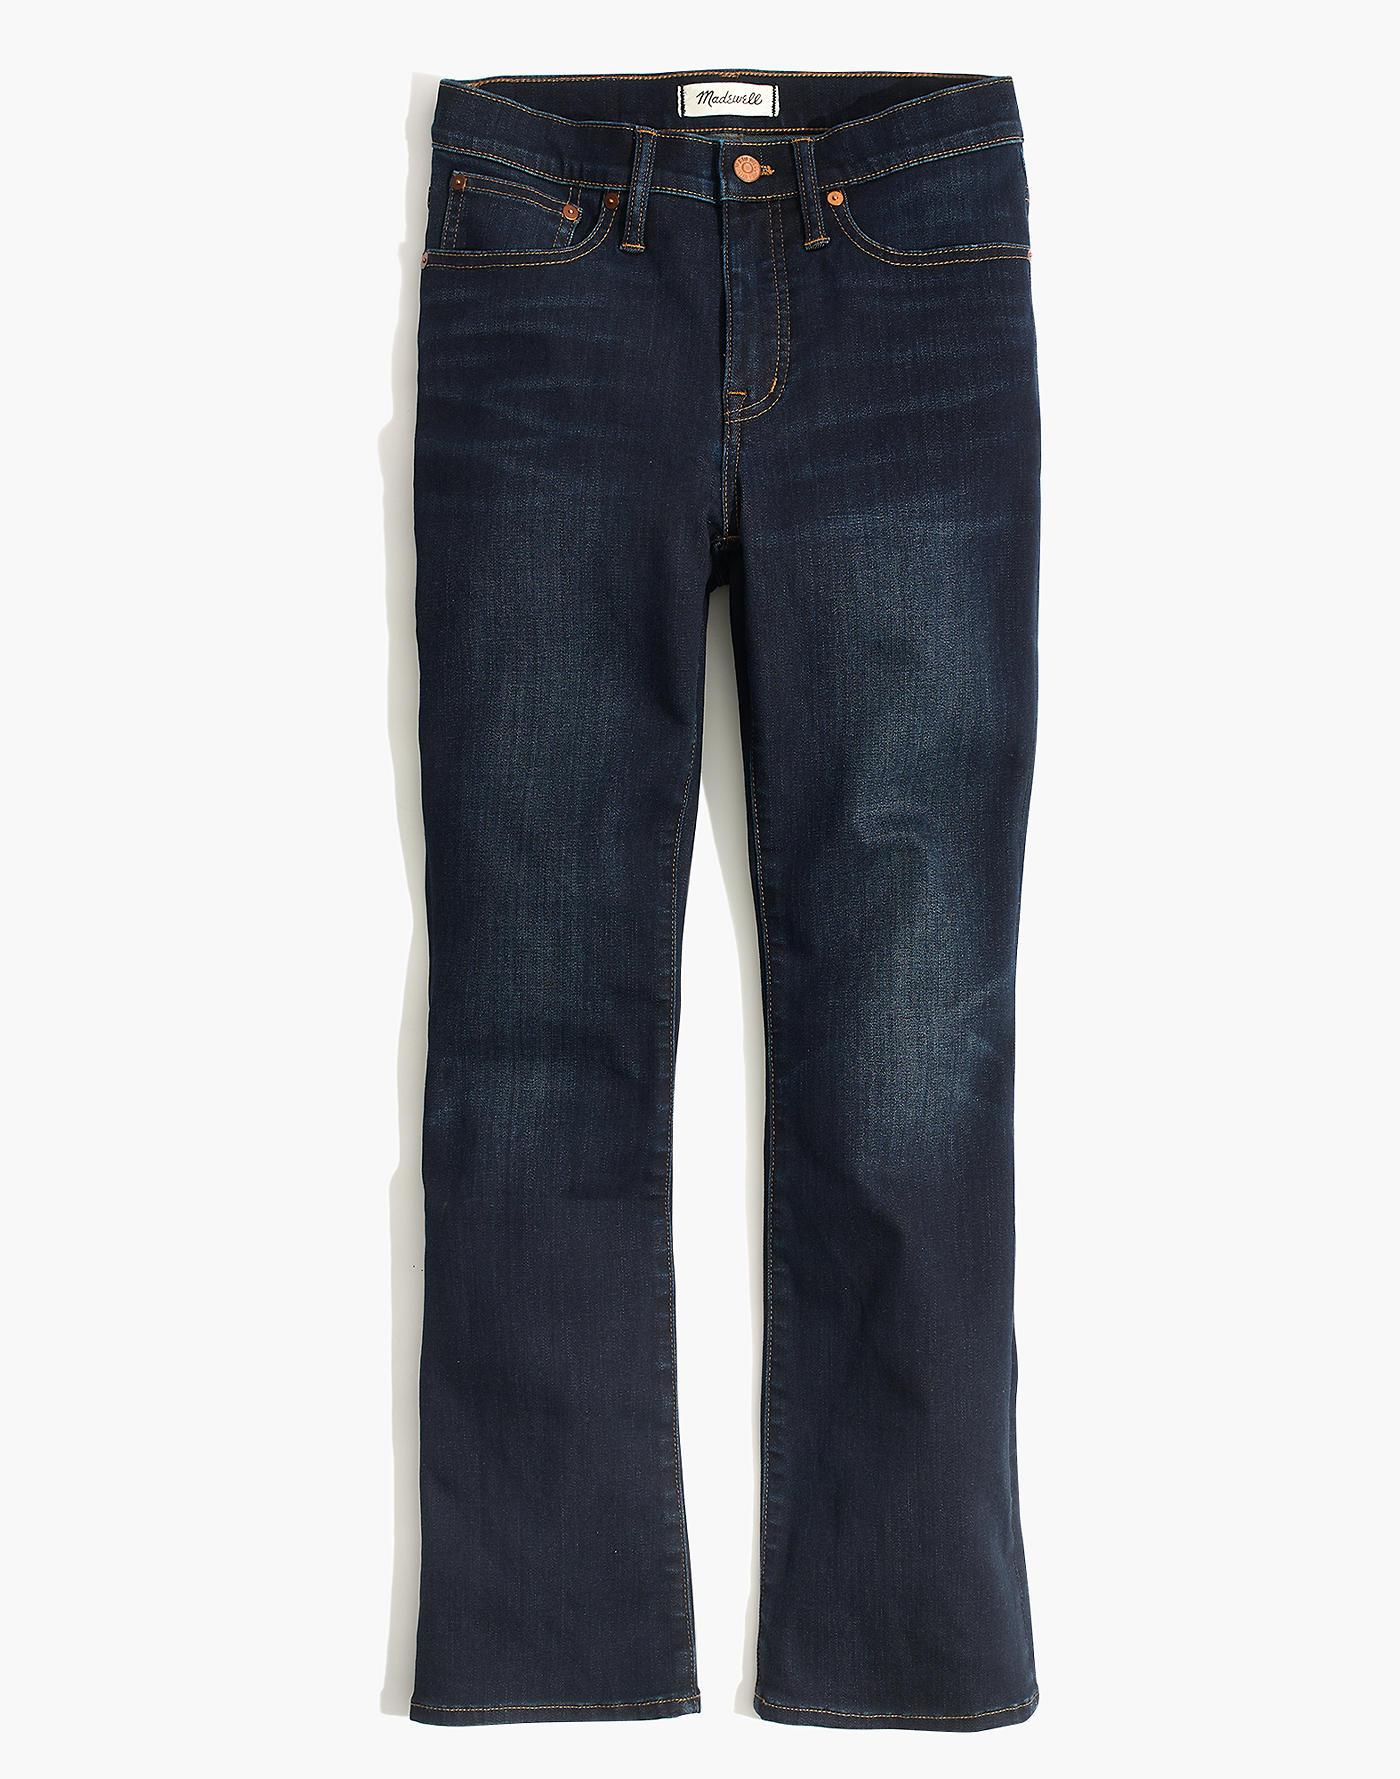 Madewell Denim Tall Cali Demi-boot Jeans In Larkspur Wash: ™ Edition in Blue